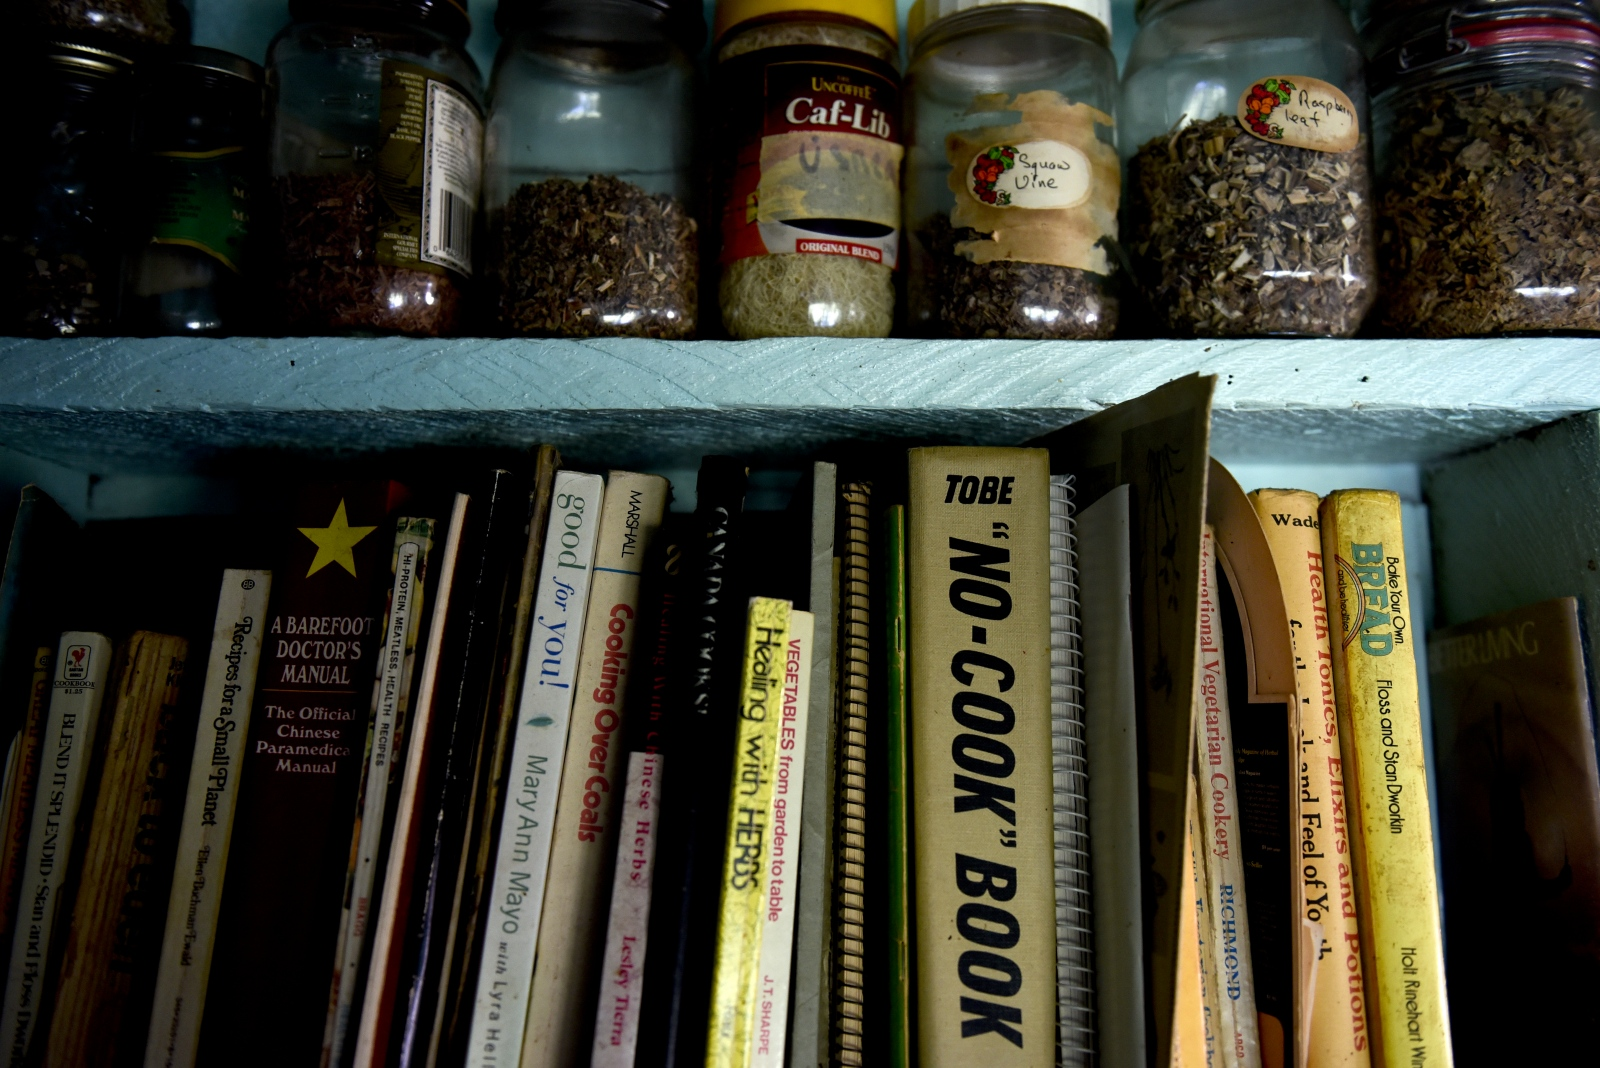 Spices and cookbooks are seen in the kitchen.